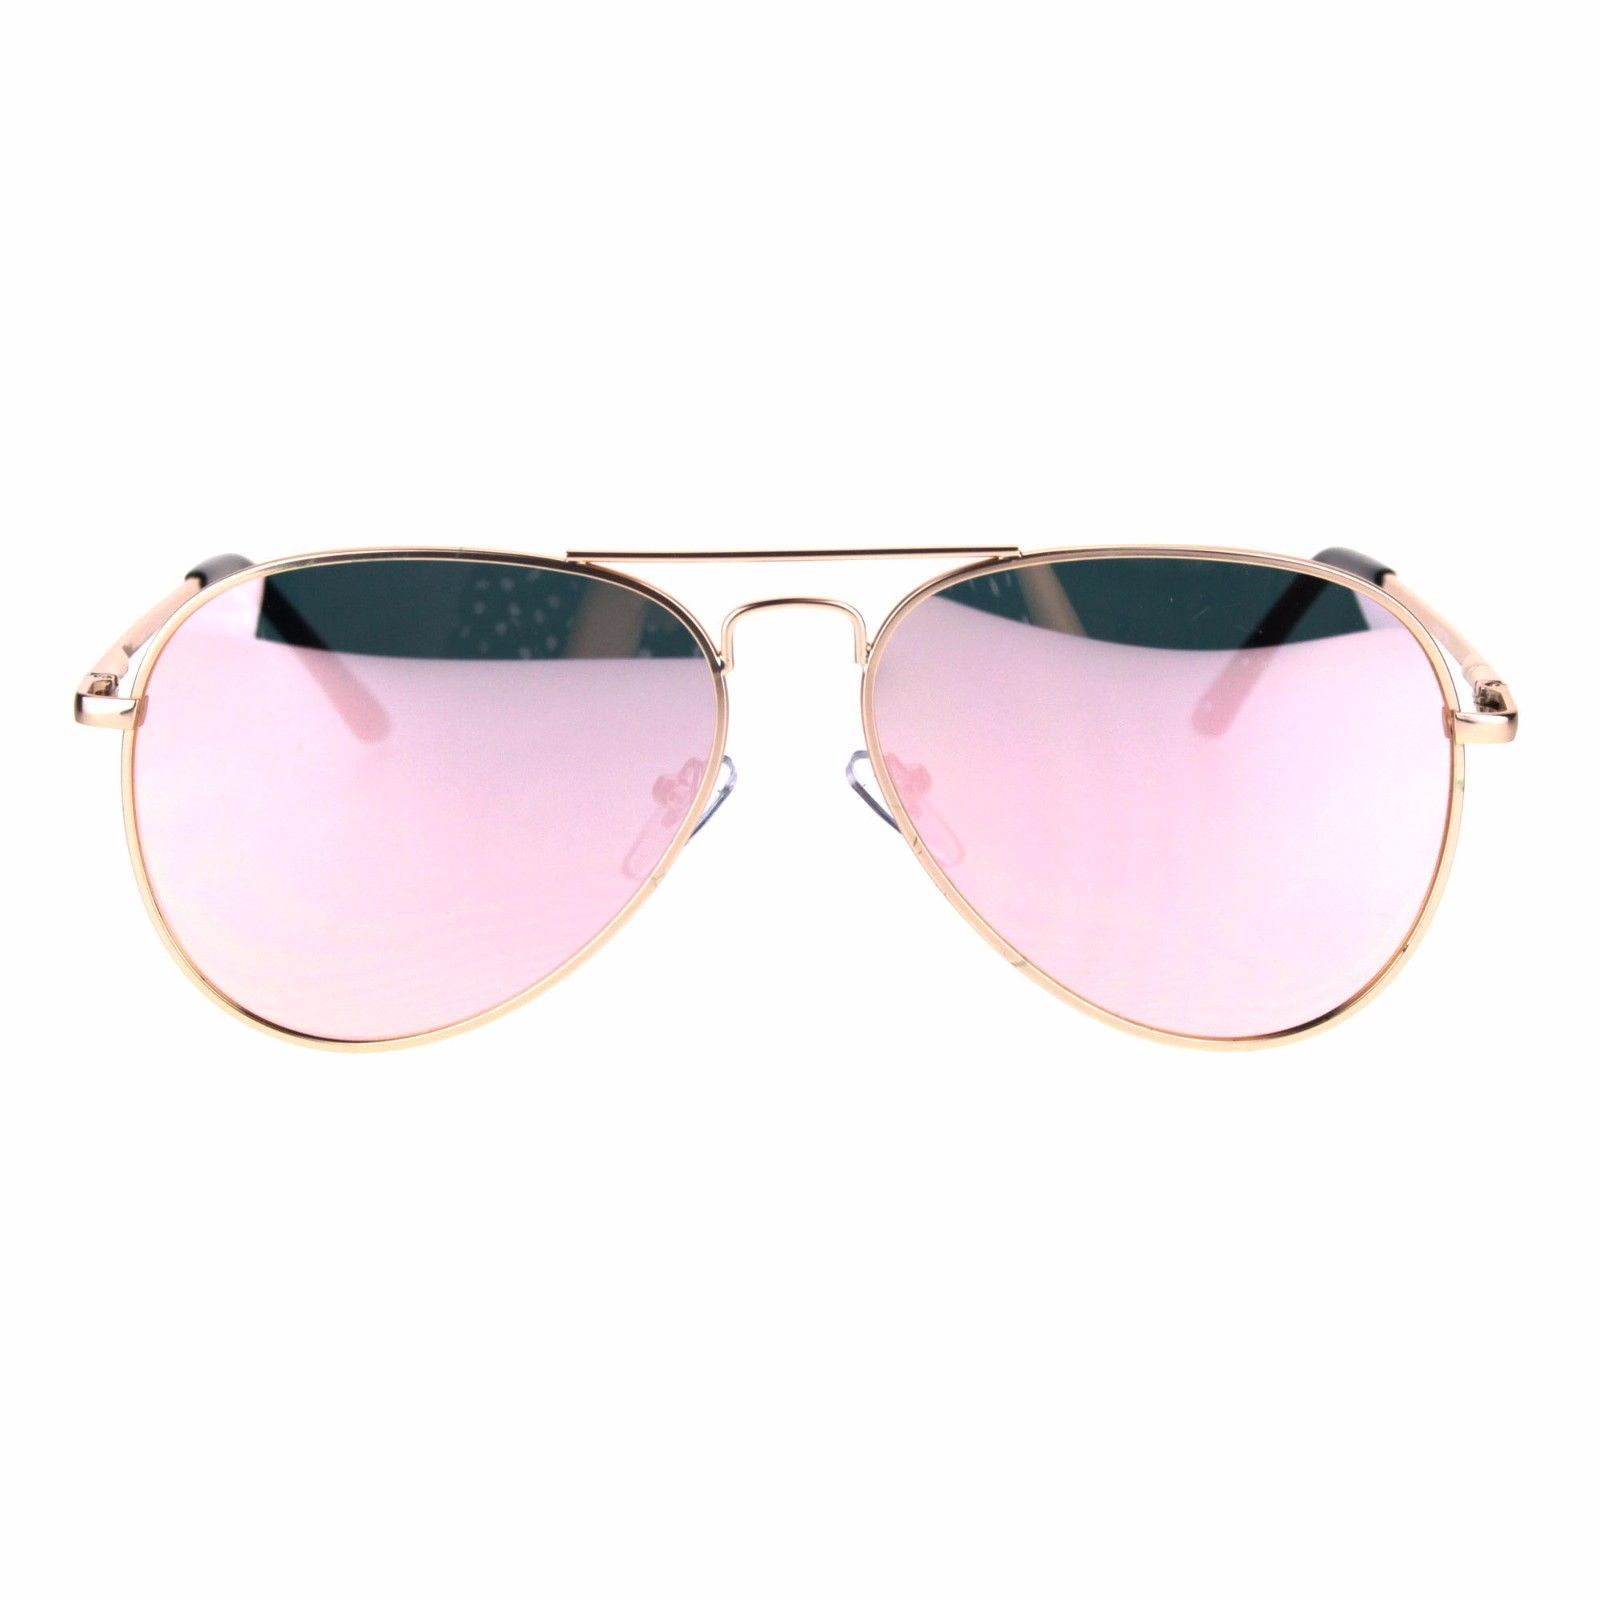 Womens Aviator Sunglasses Gold Metal Frame Pink Mirrored Lens UV400 Spring Hinge